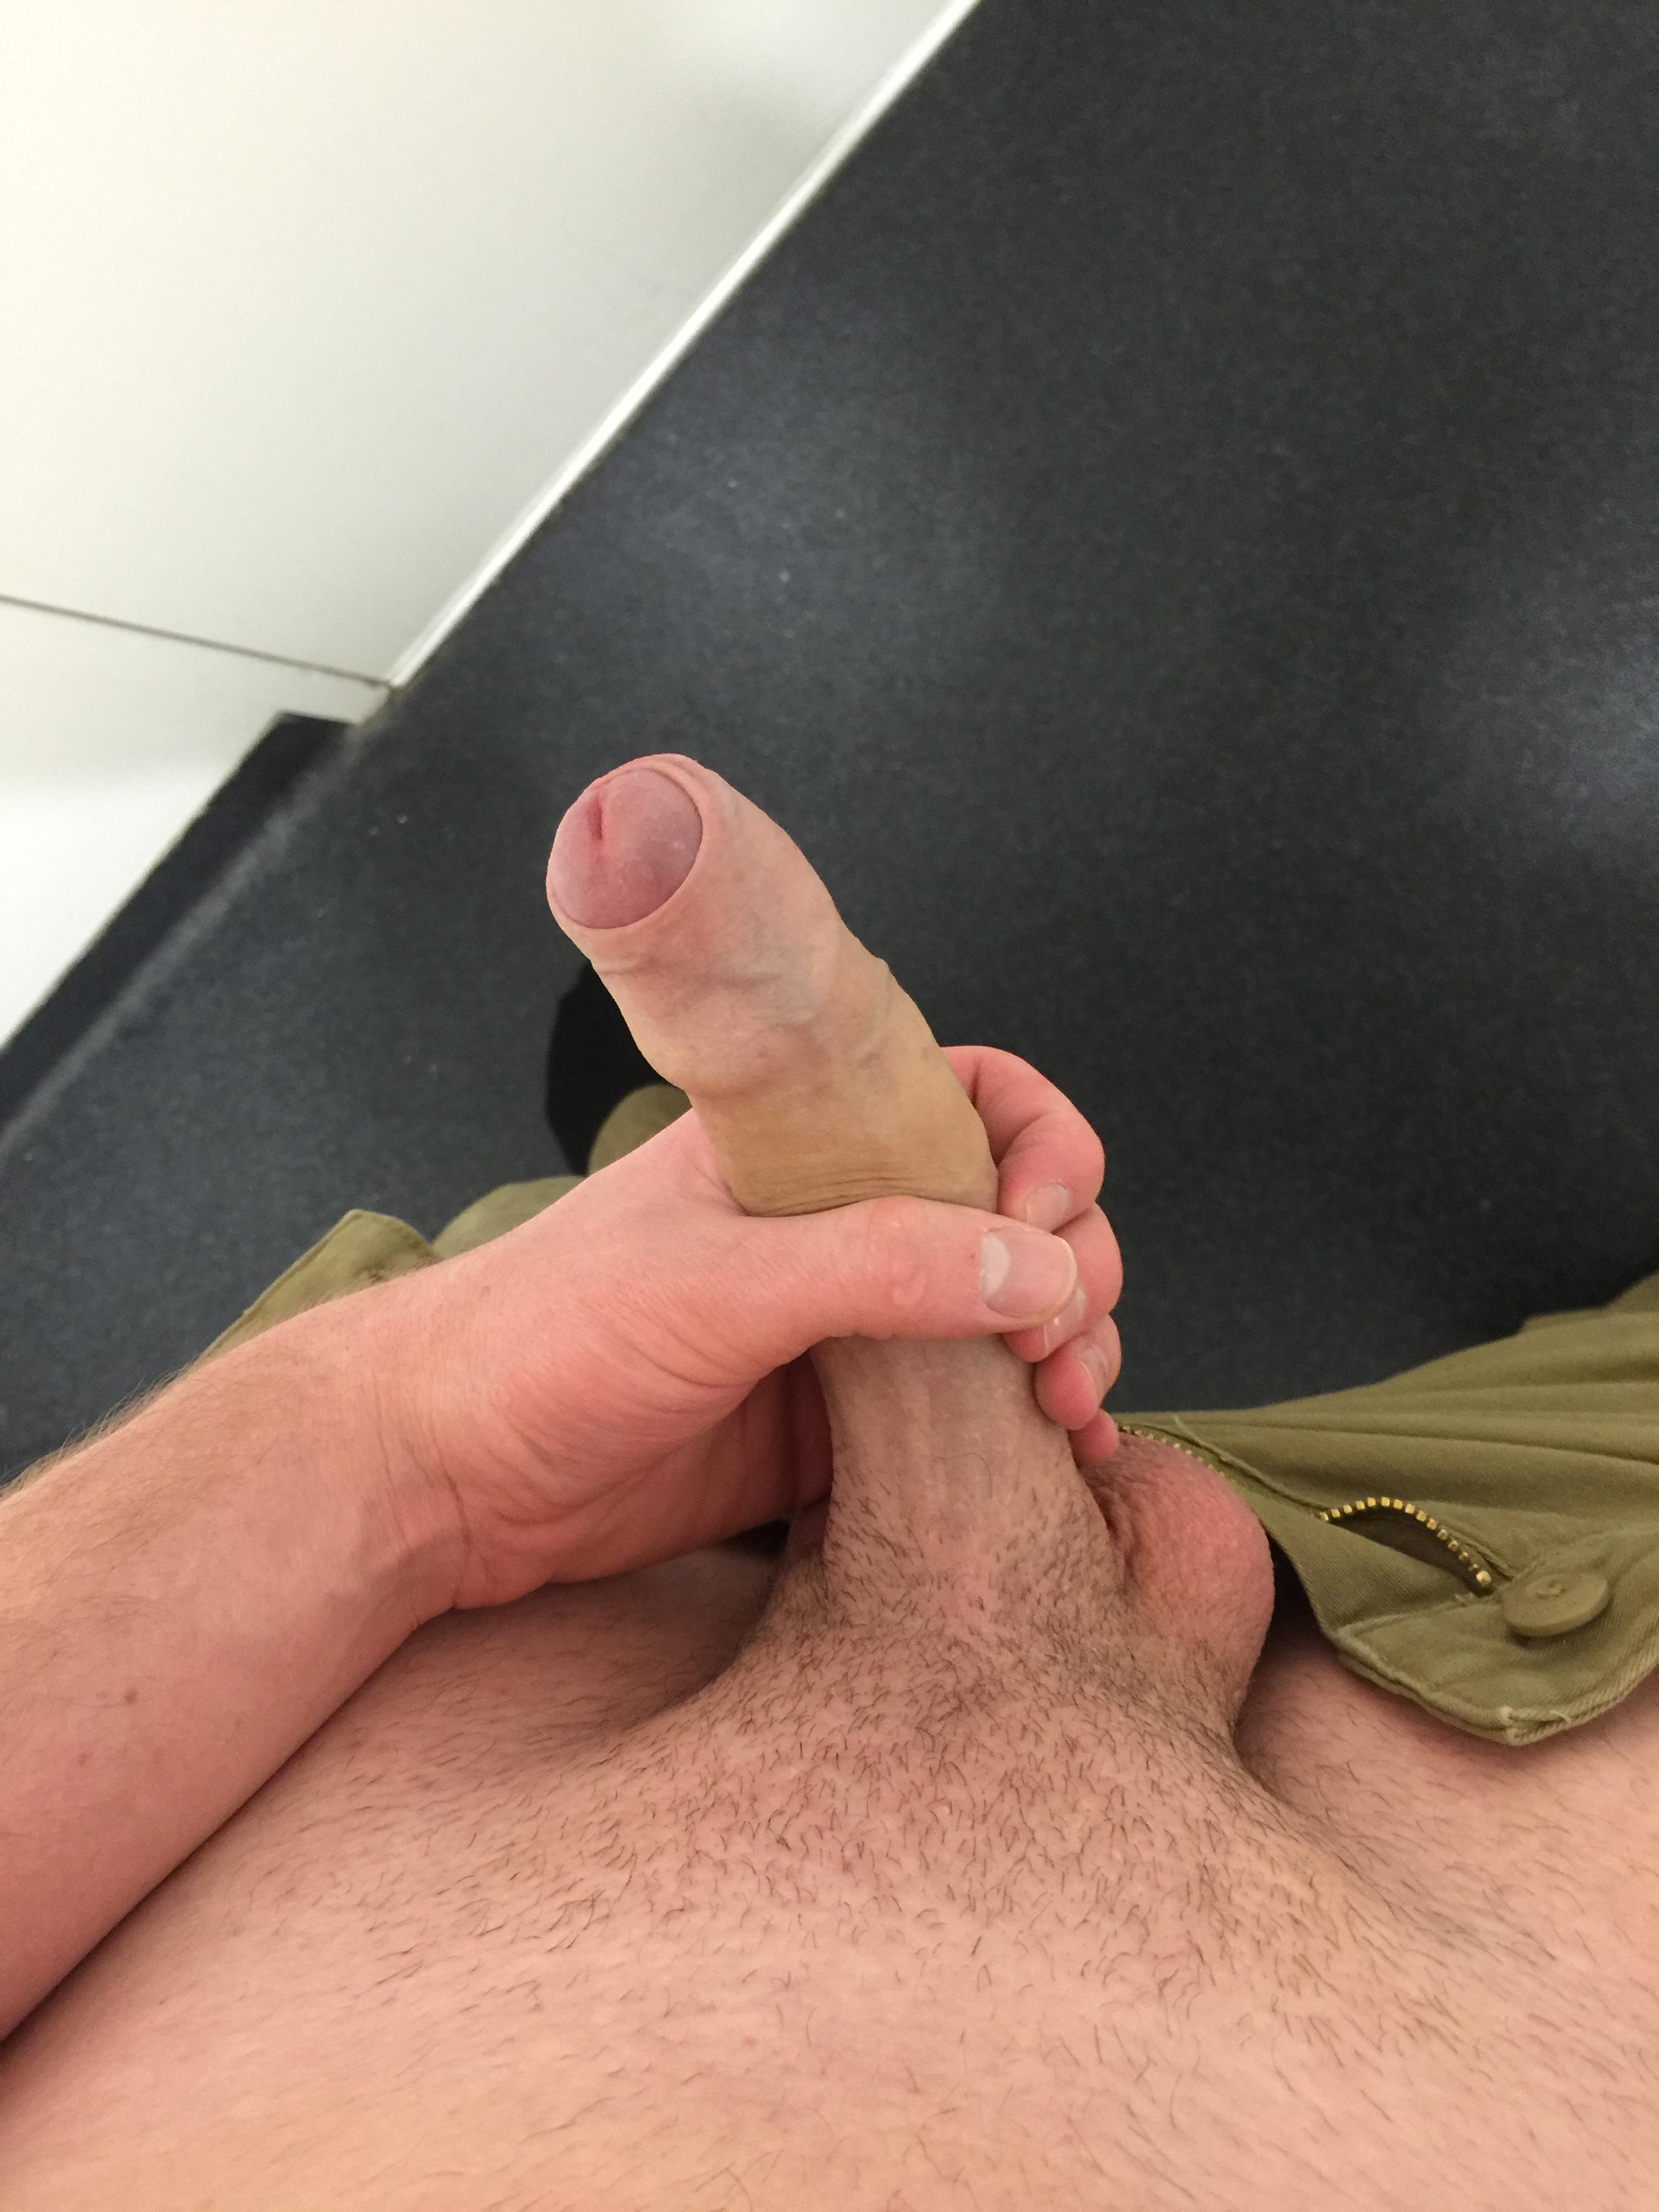 At work jerking off